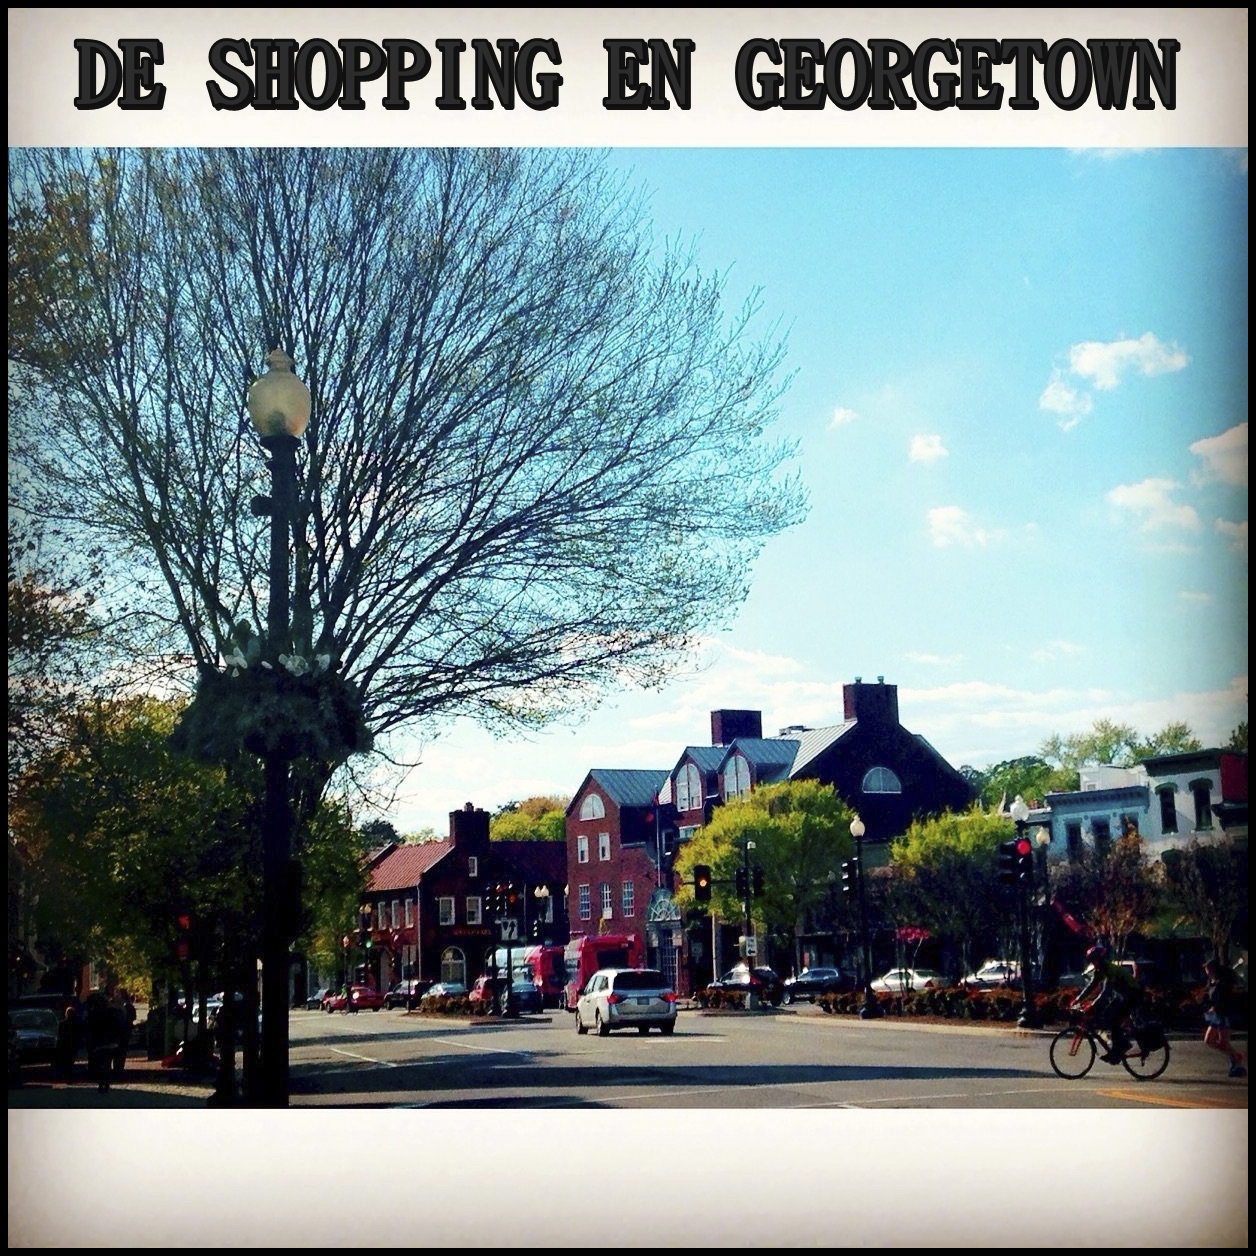 The shopping en Georgetown